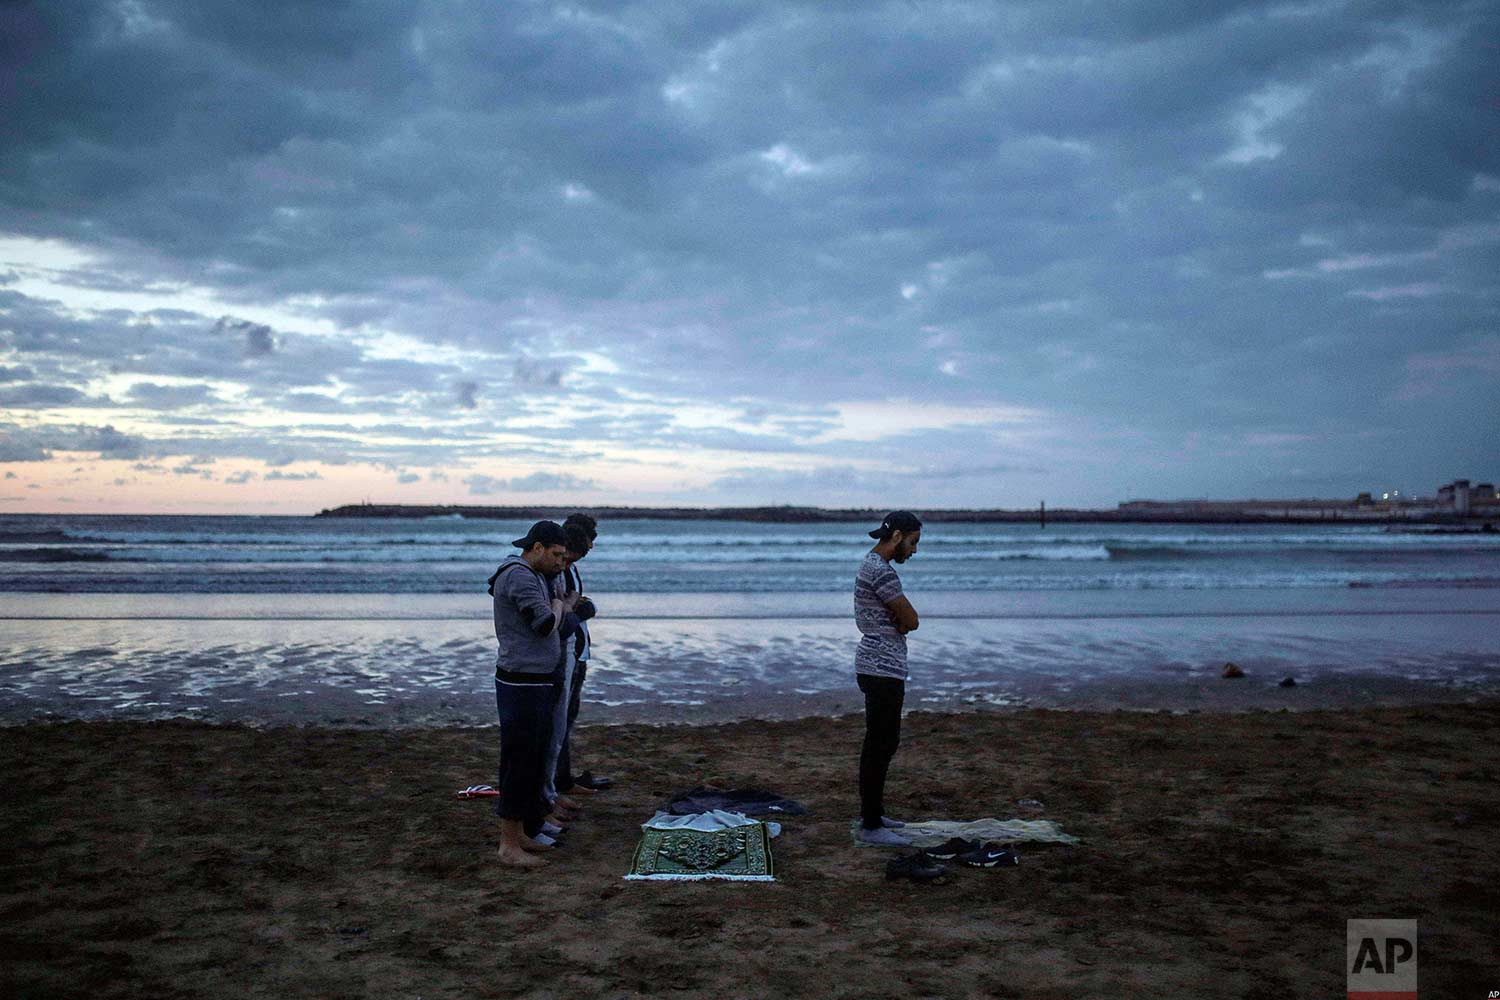 Men pray sunset prayers after breaking their fast on the beach in the holy month of Ramadan, Rabat, Morocco, Saturday, June 9, 2018. (AP Photo/Mosa'ab Elshamy)